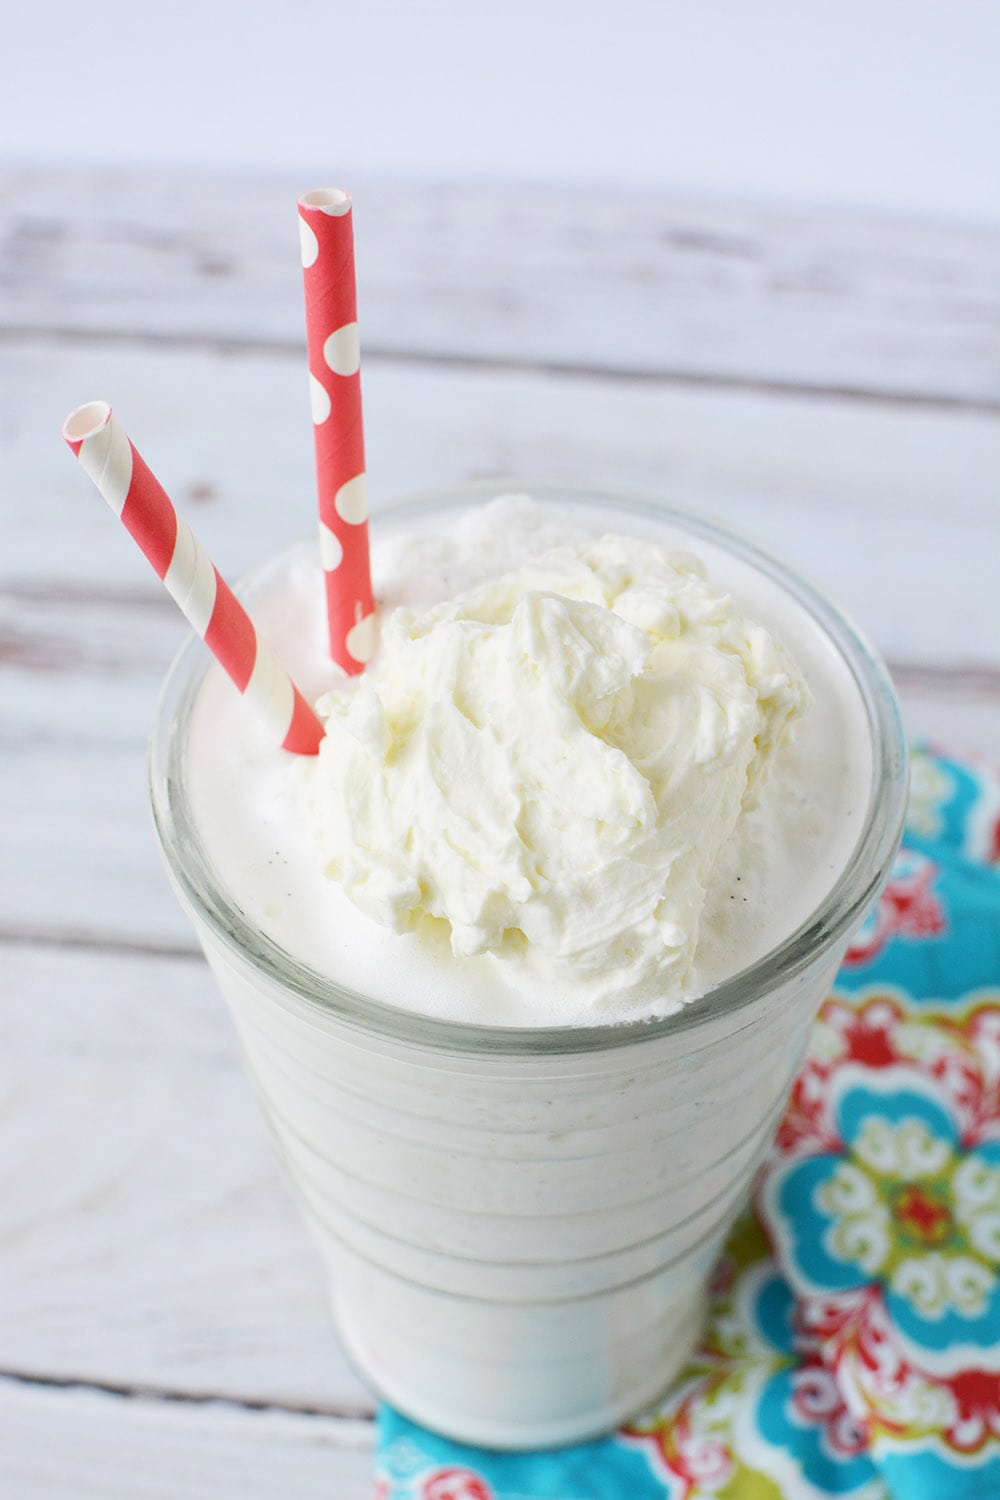 blended vanilla bean frappe in a glass with two red straws